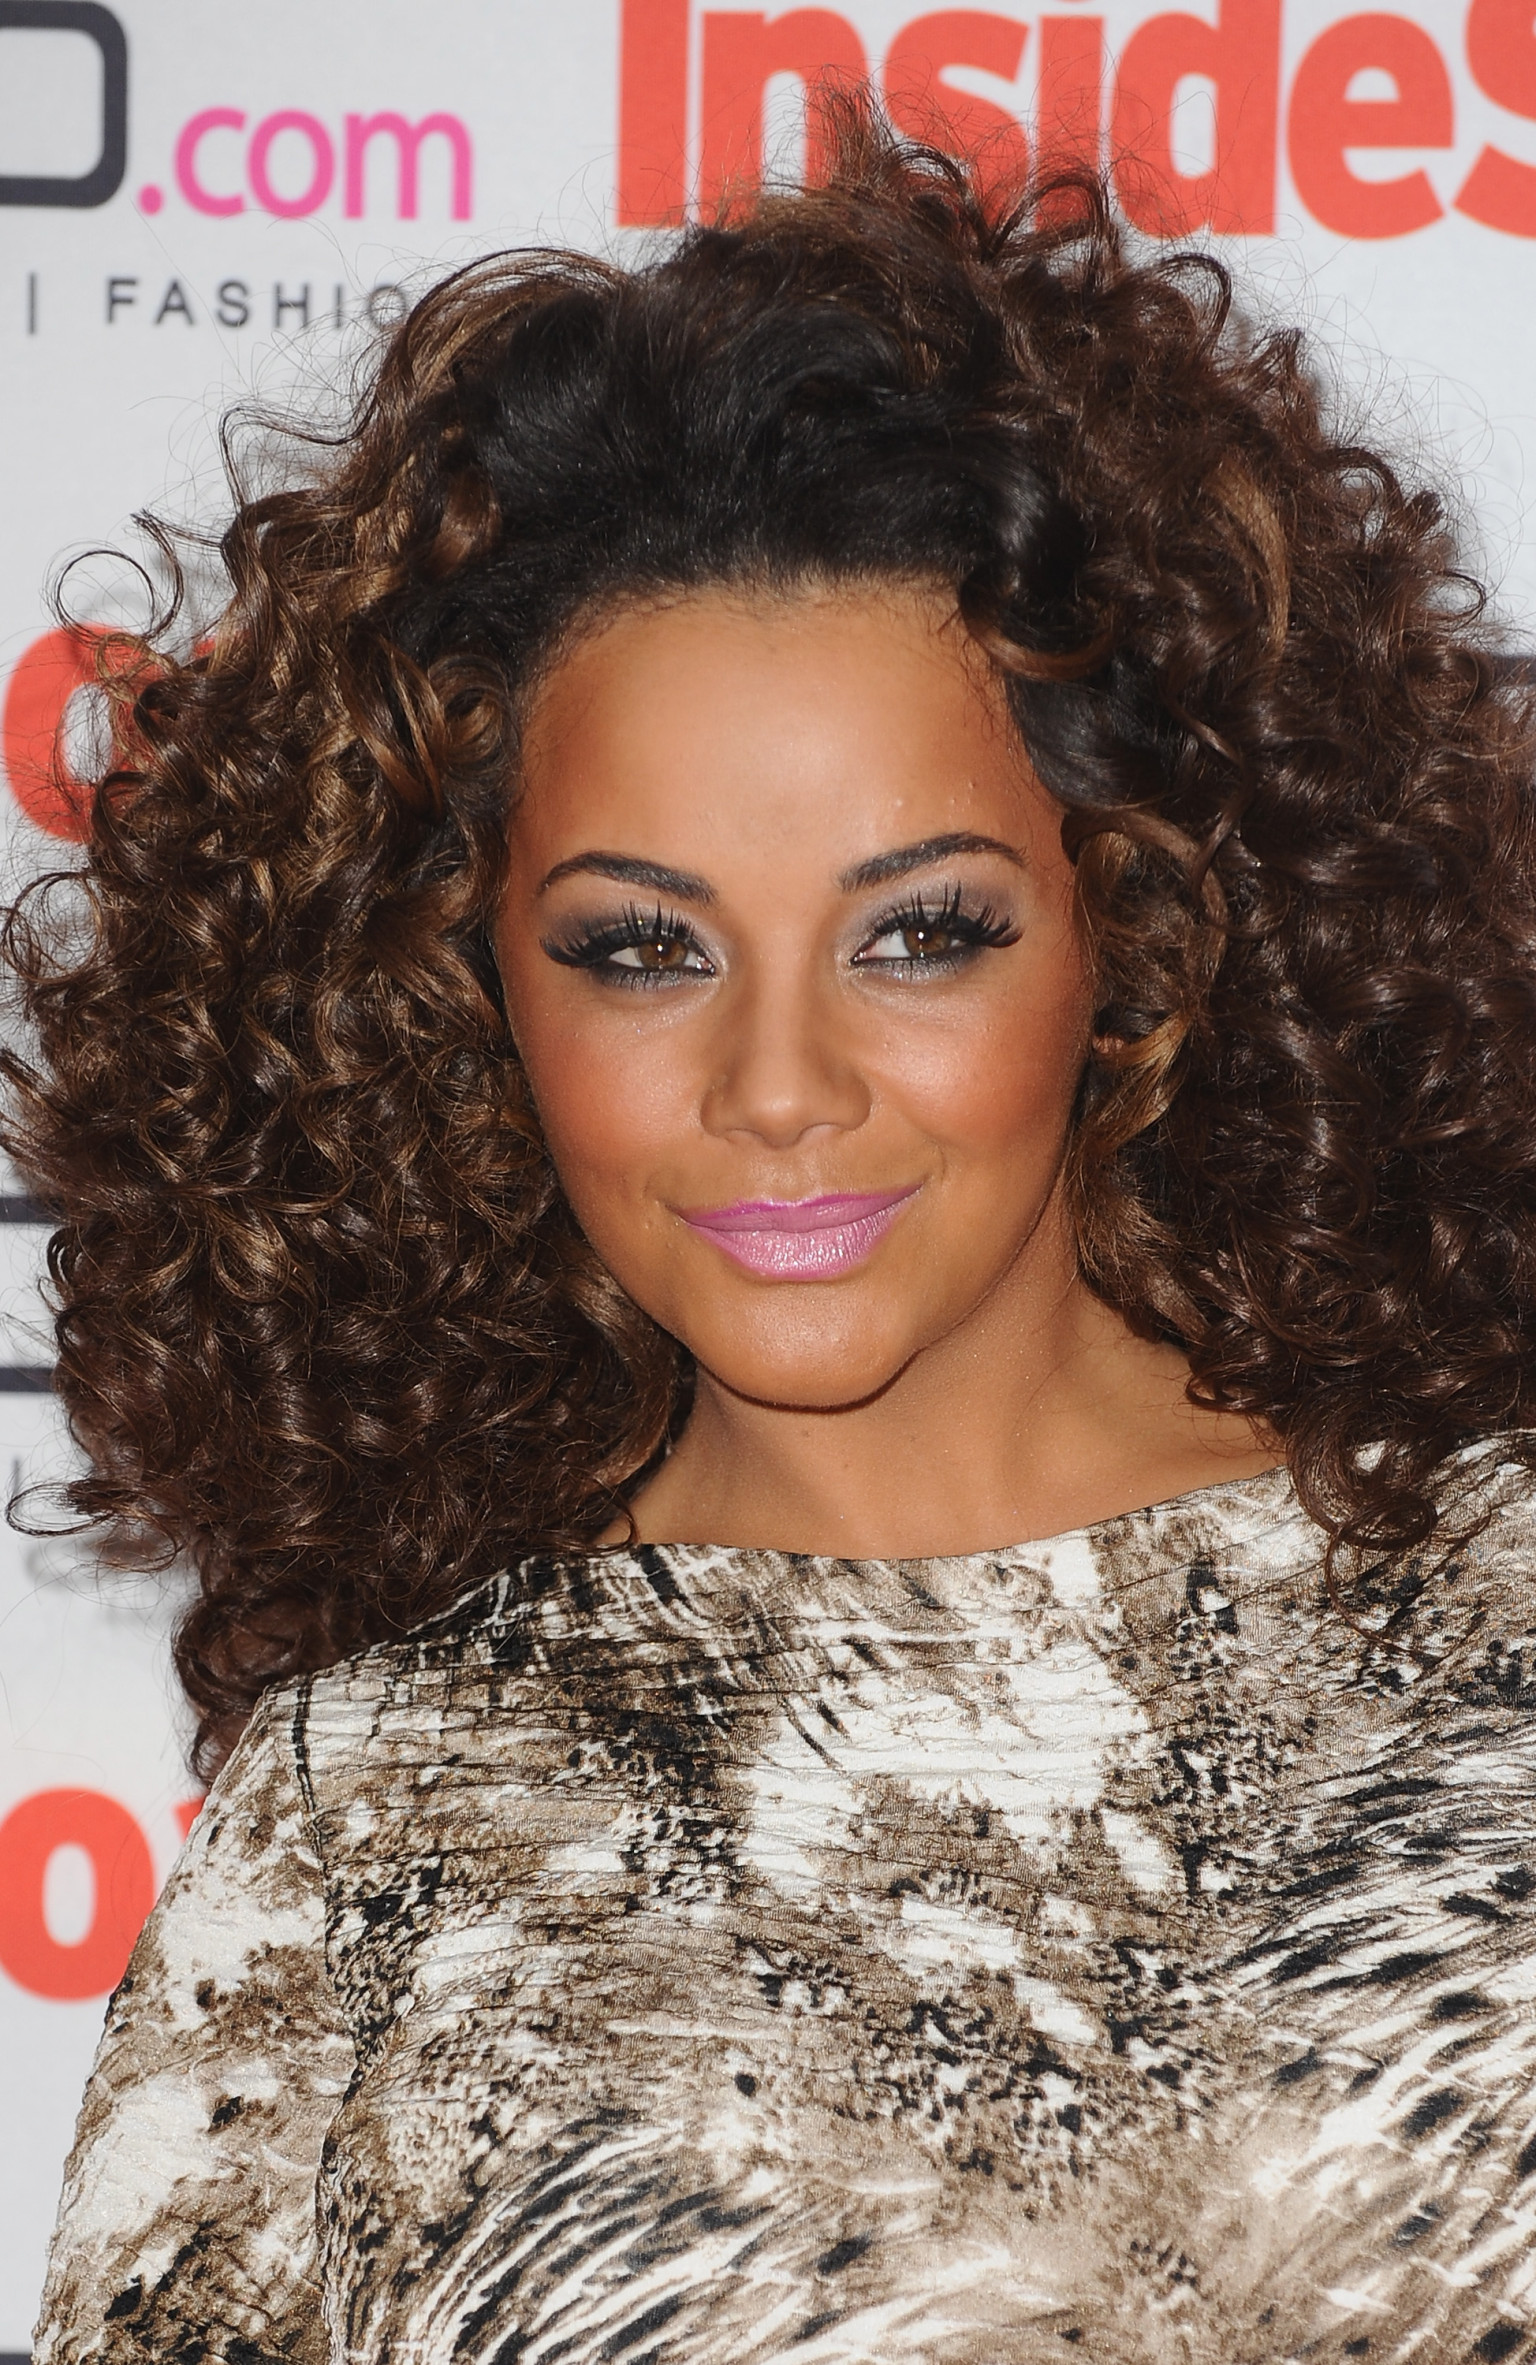 Chelsee Healey Left Shaken After Being Punched On A Night